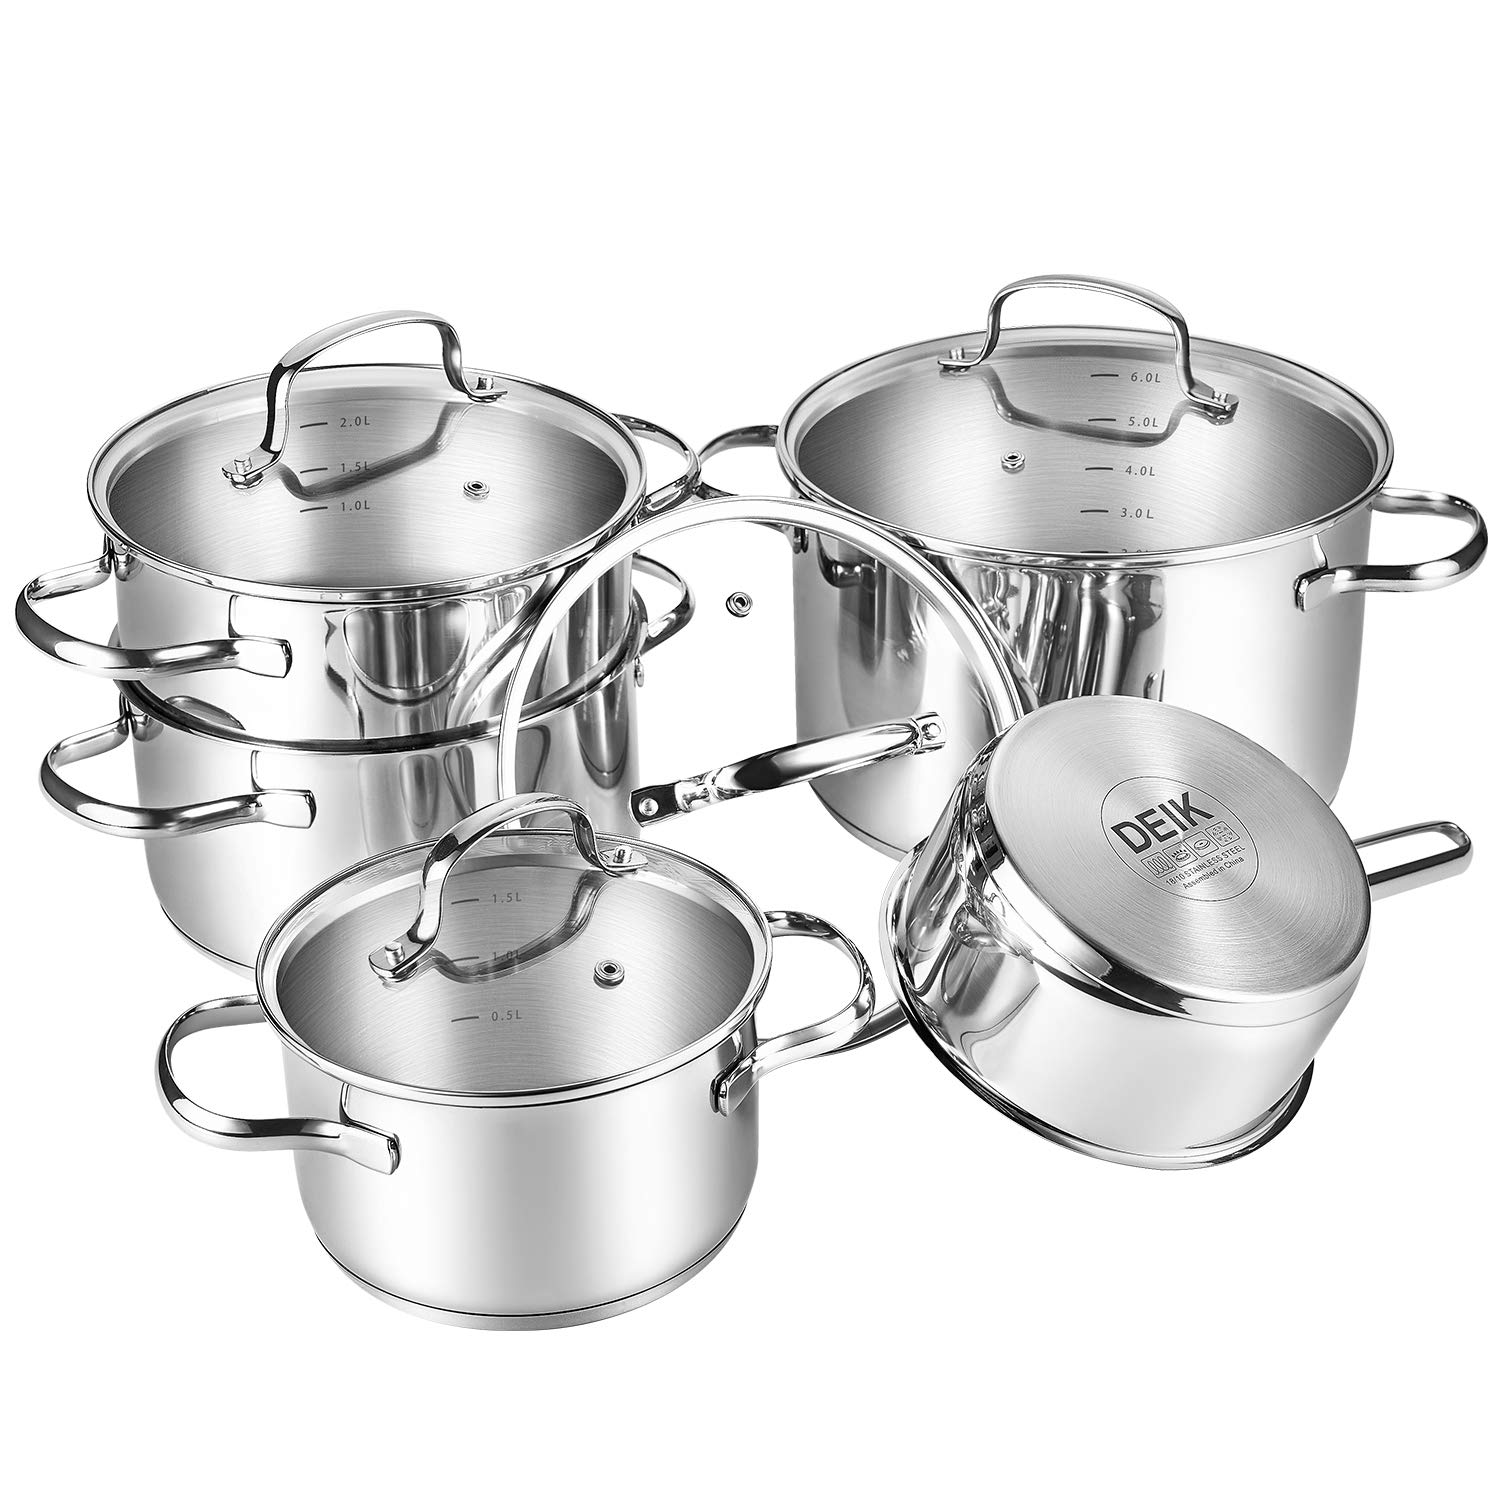 Pots & Pans Useful Stainless Steel 5pc Cookware Casserole Stockpot Pot Hob Set With Glass Lids Reputation First Cookware, Dining & Bar